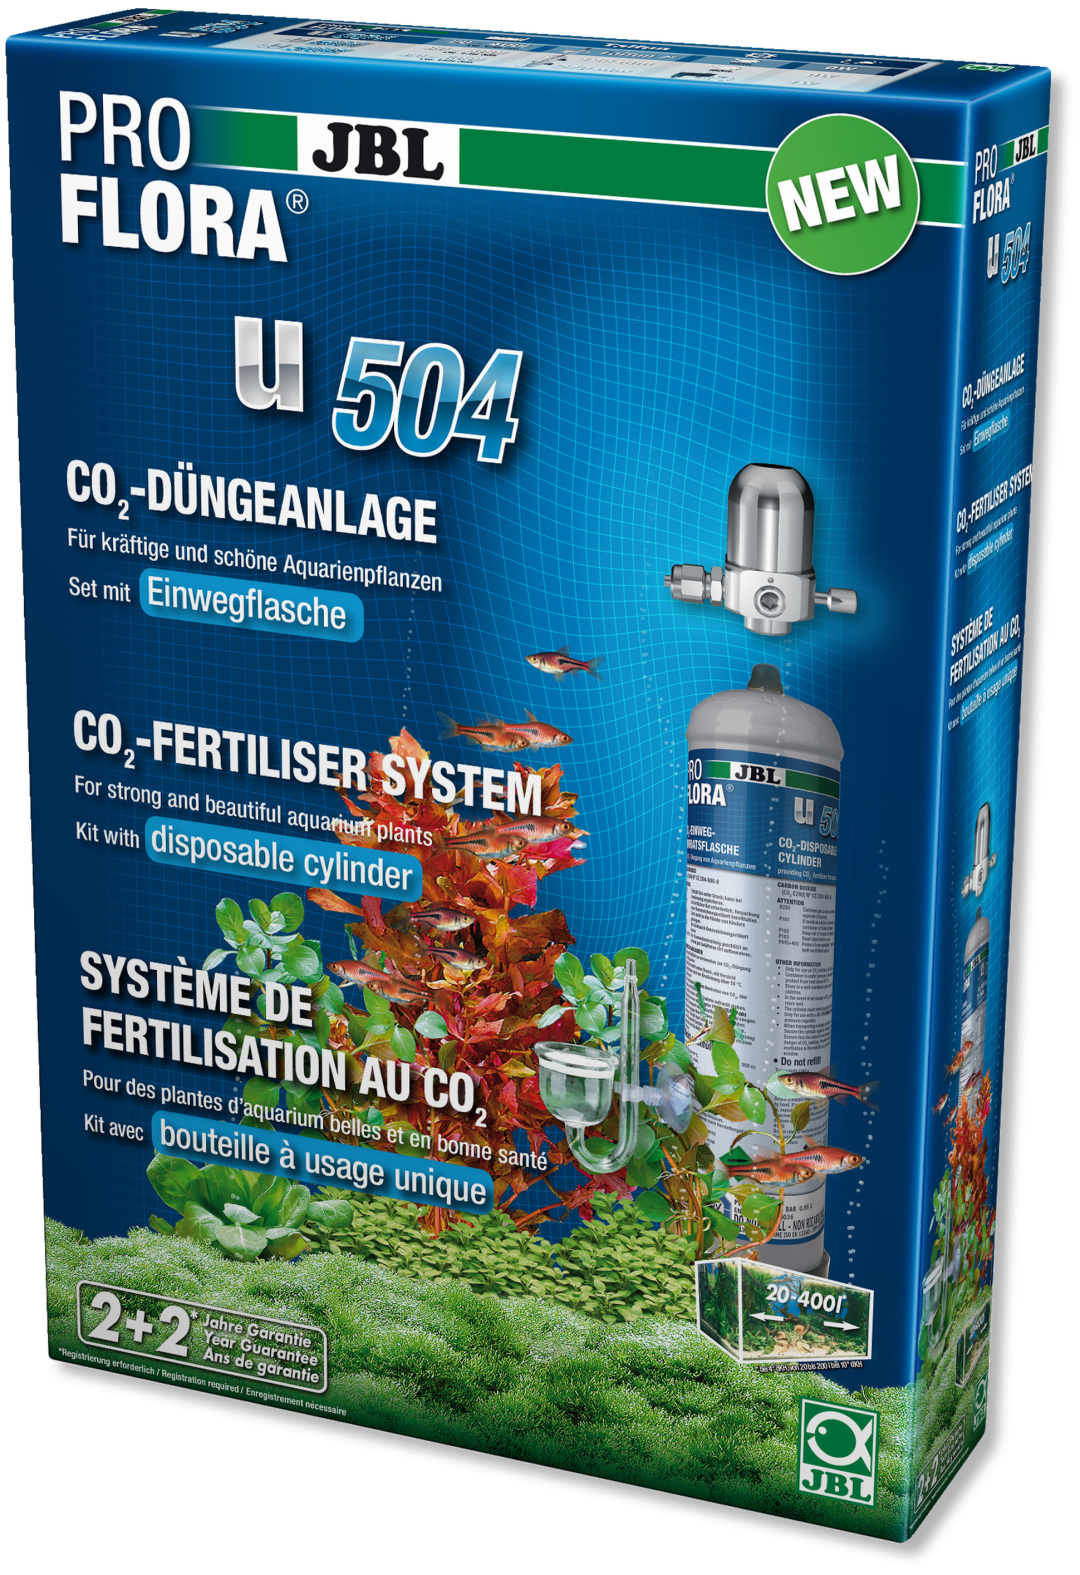 JBL CO2-set ProFlora u504